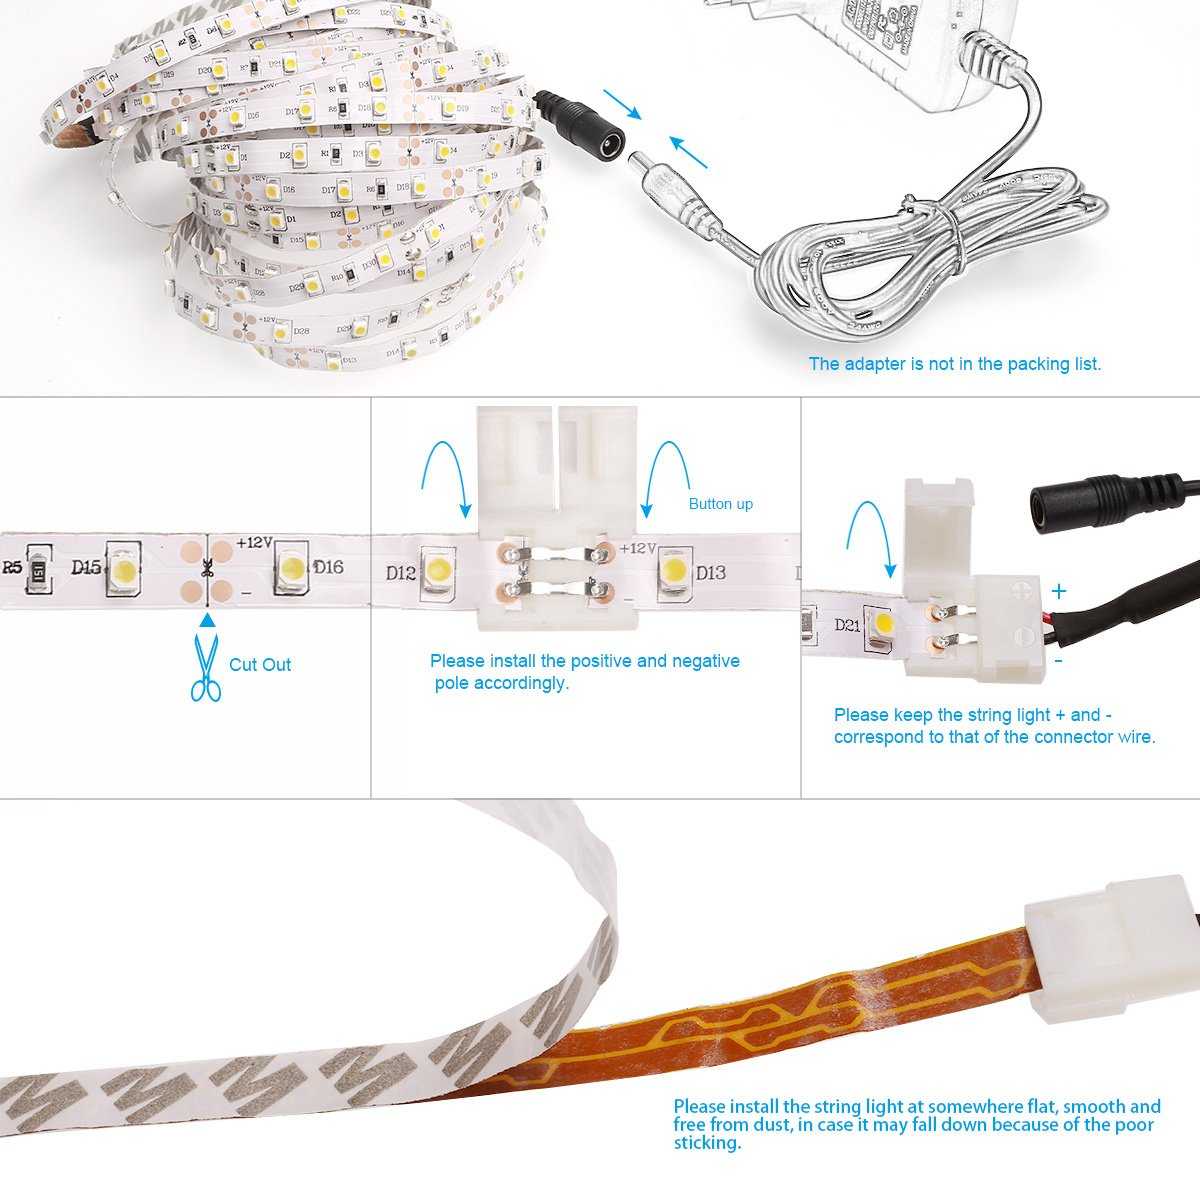 12 Volt Led Strip Light Wiring Diagram Free Picture Library Amazoncom Le 164ft 12v Flexible Lights 3000k Warm White